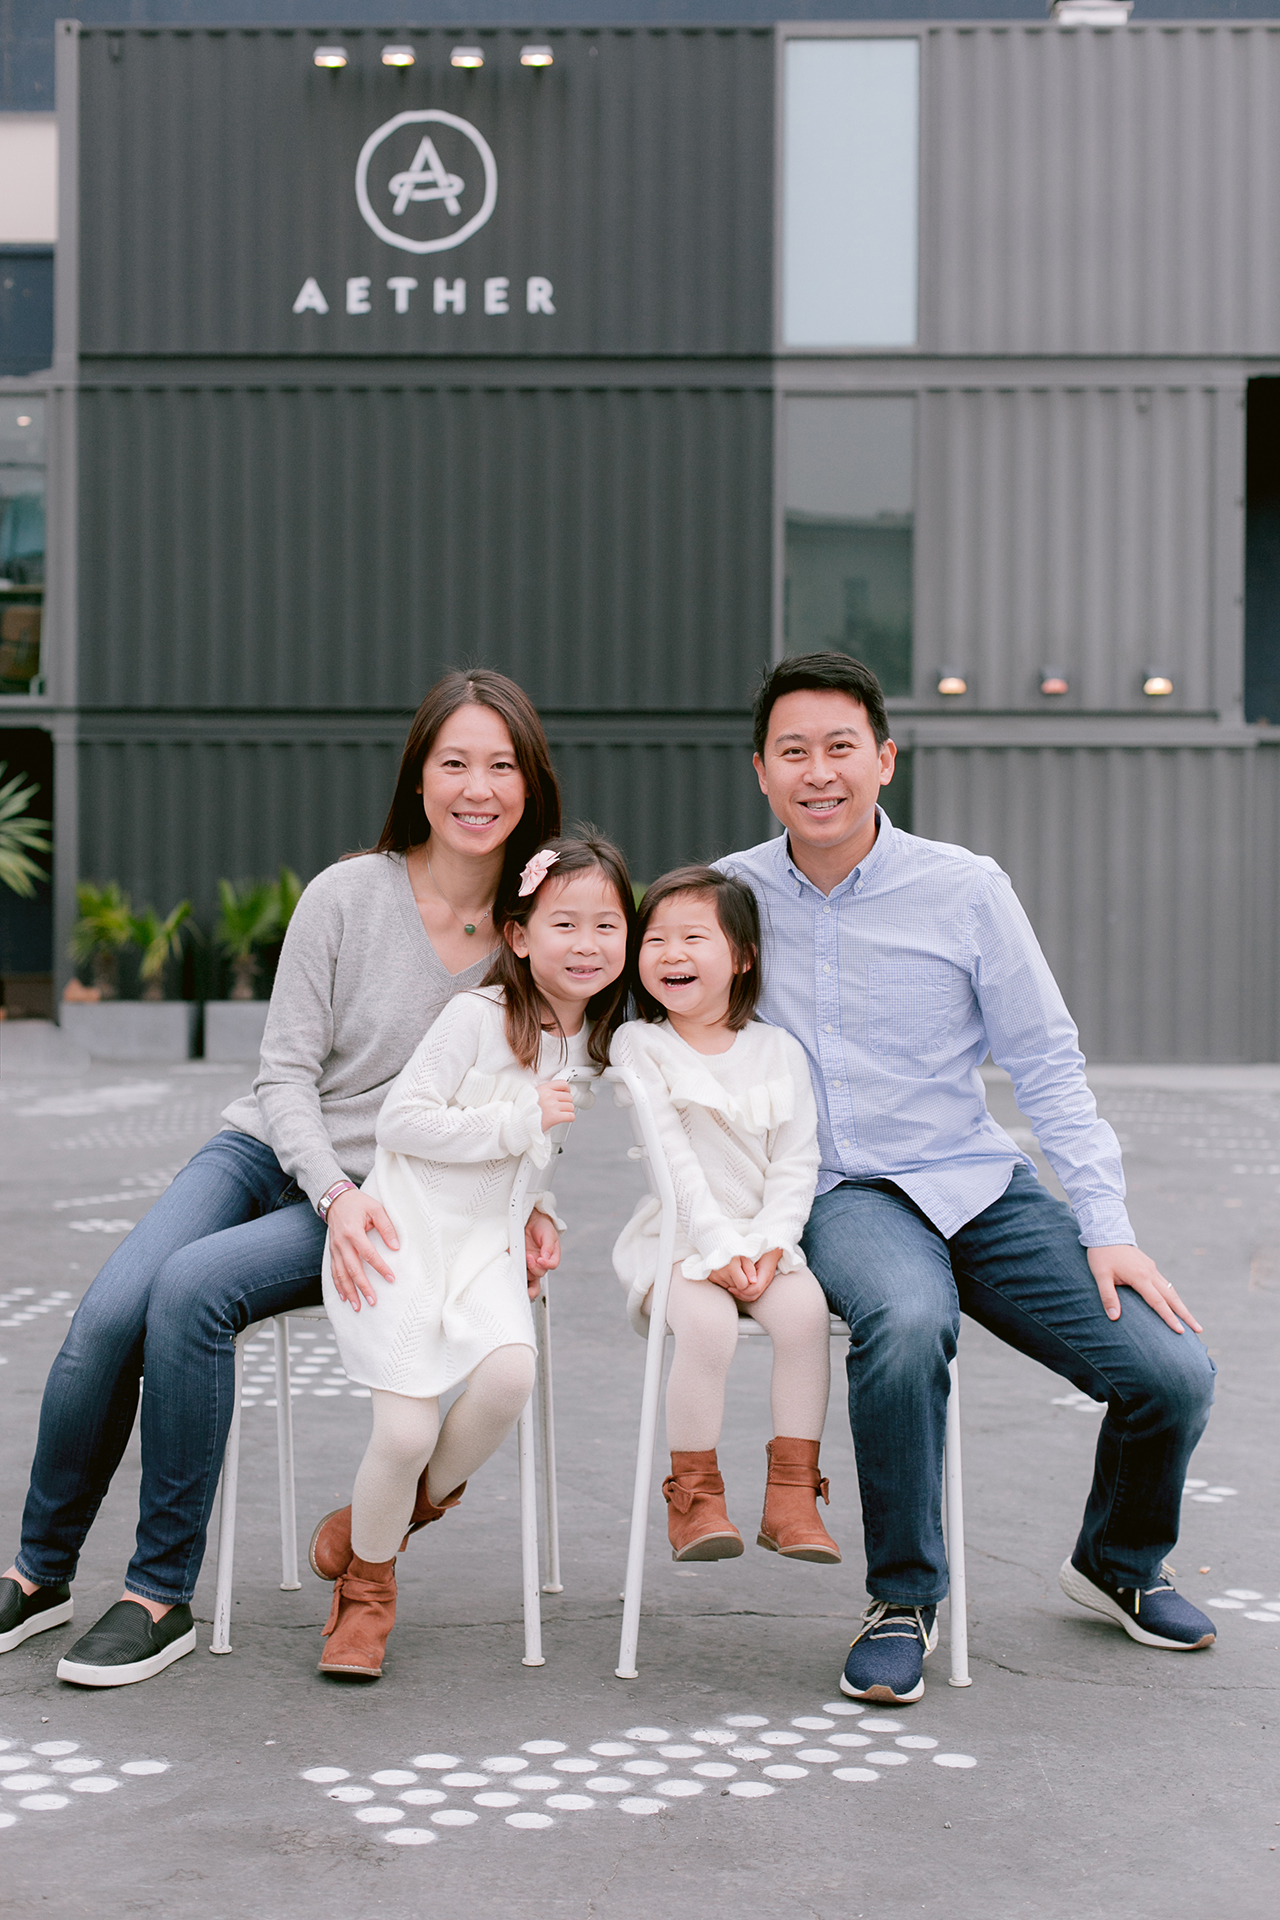 San_Francisco_Children_and_Family_Portrait_007.jpg